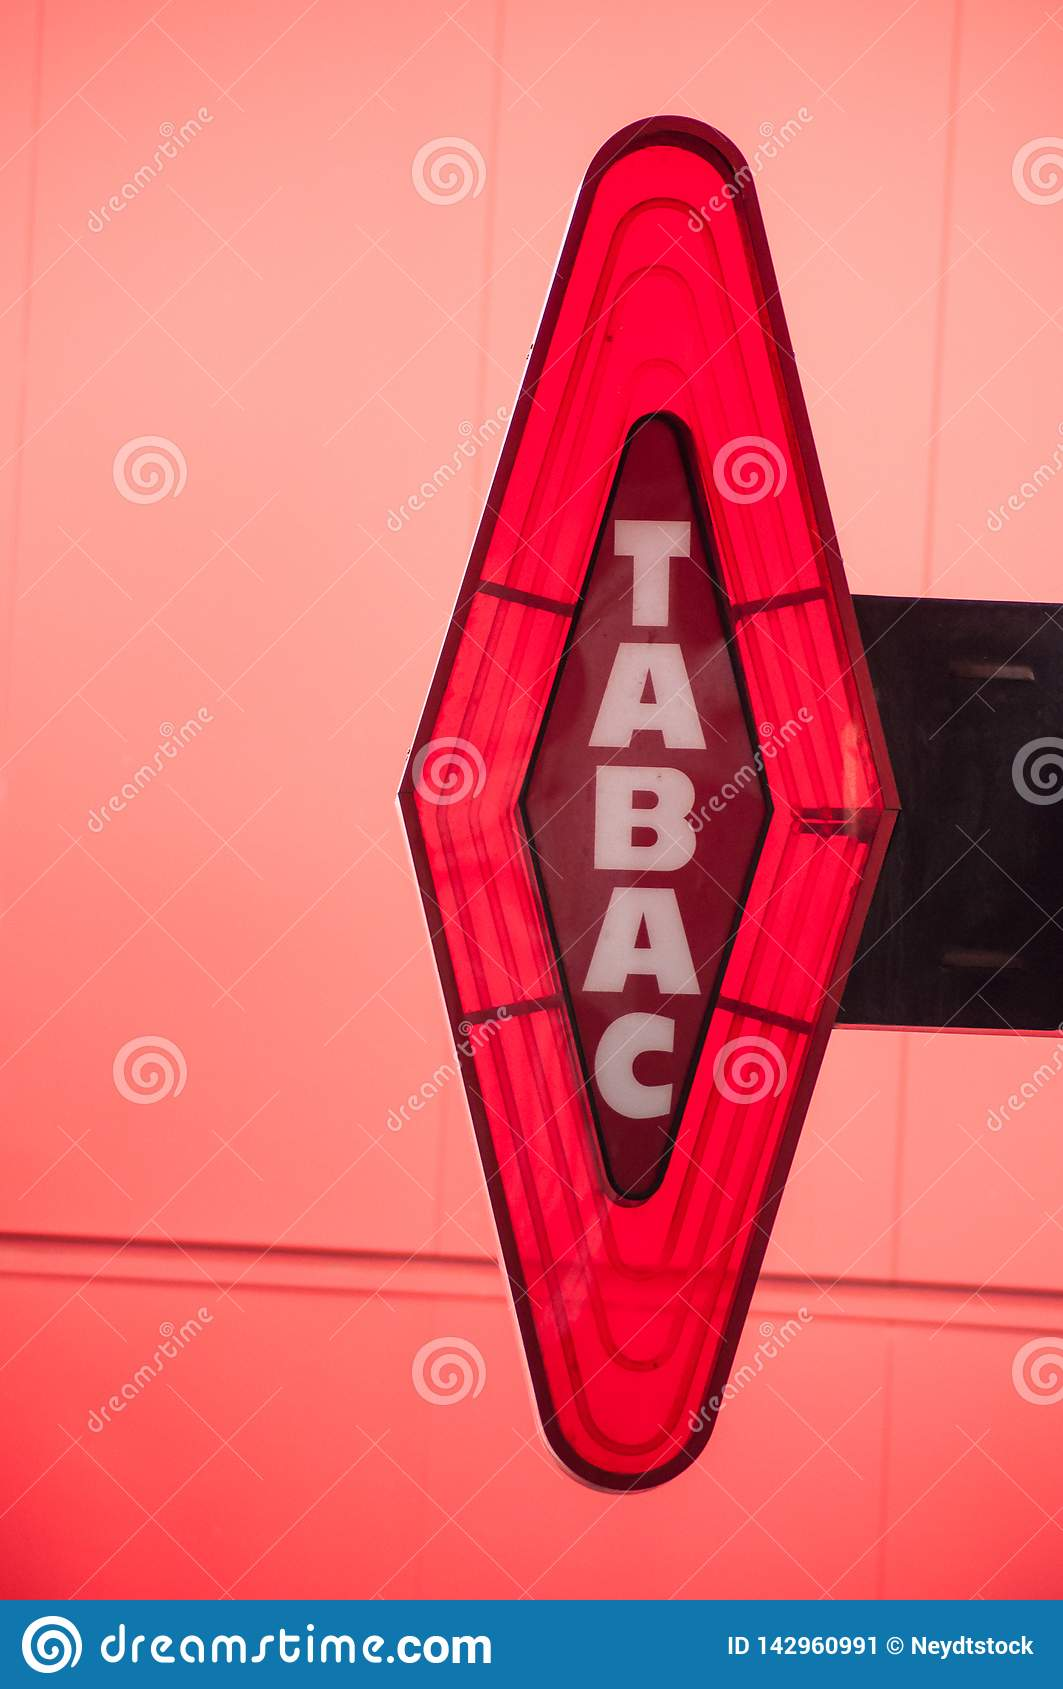 Red Tabacco Sign On Red Background With French Text Tabac The